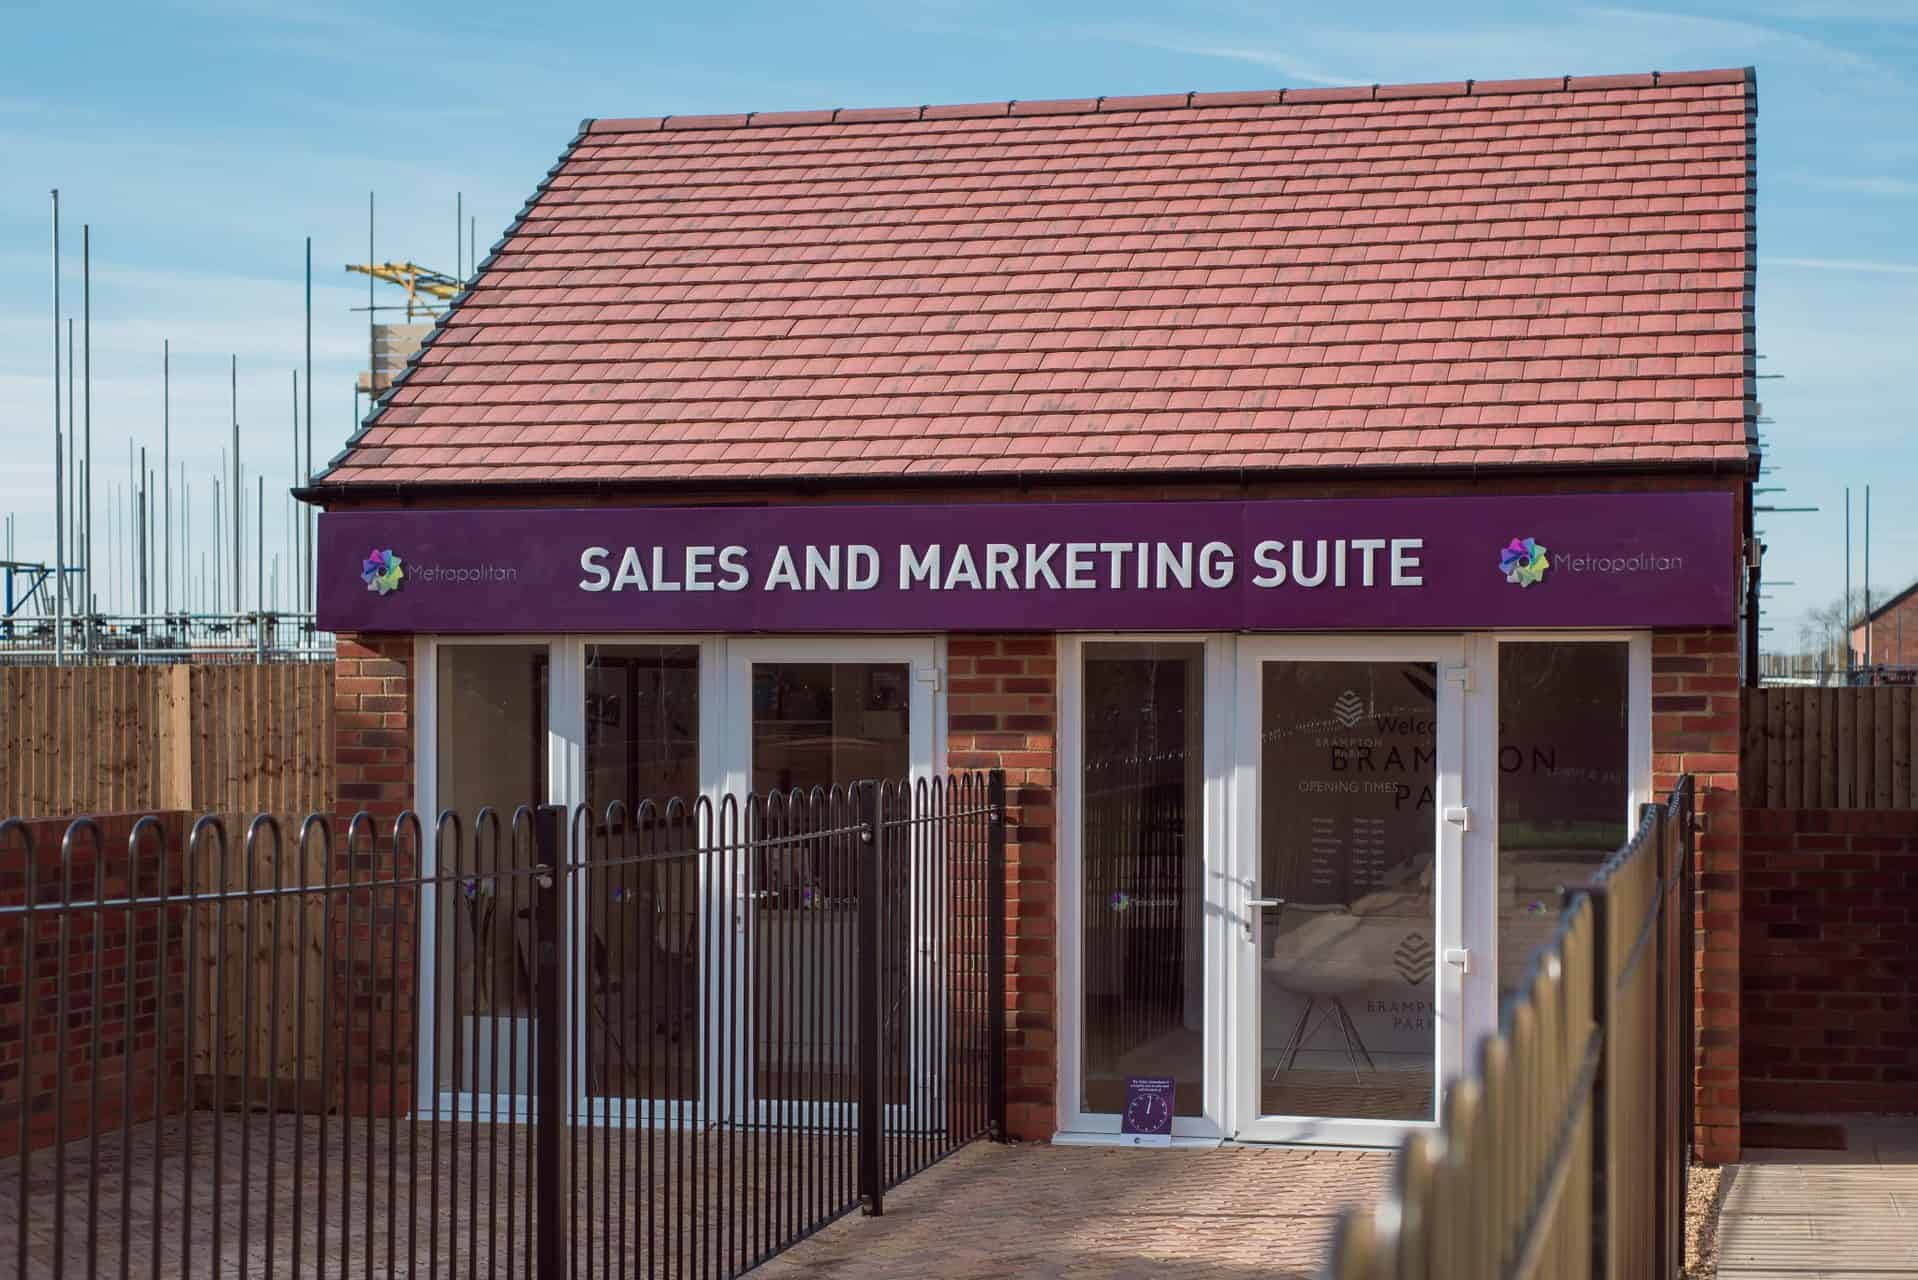 Marketing Suites